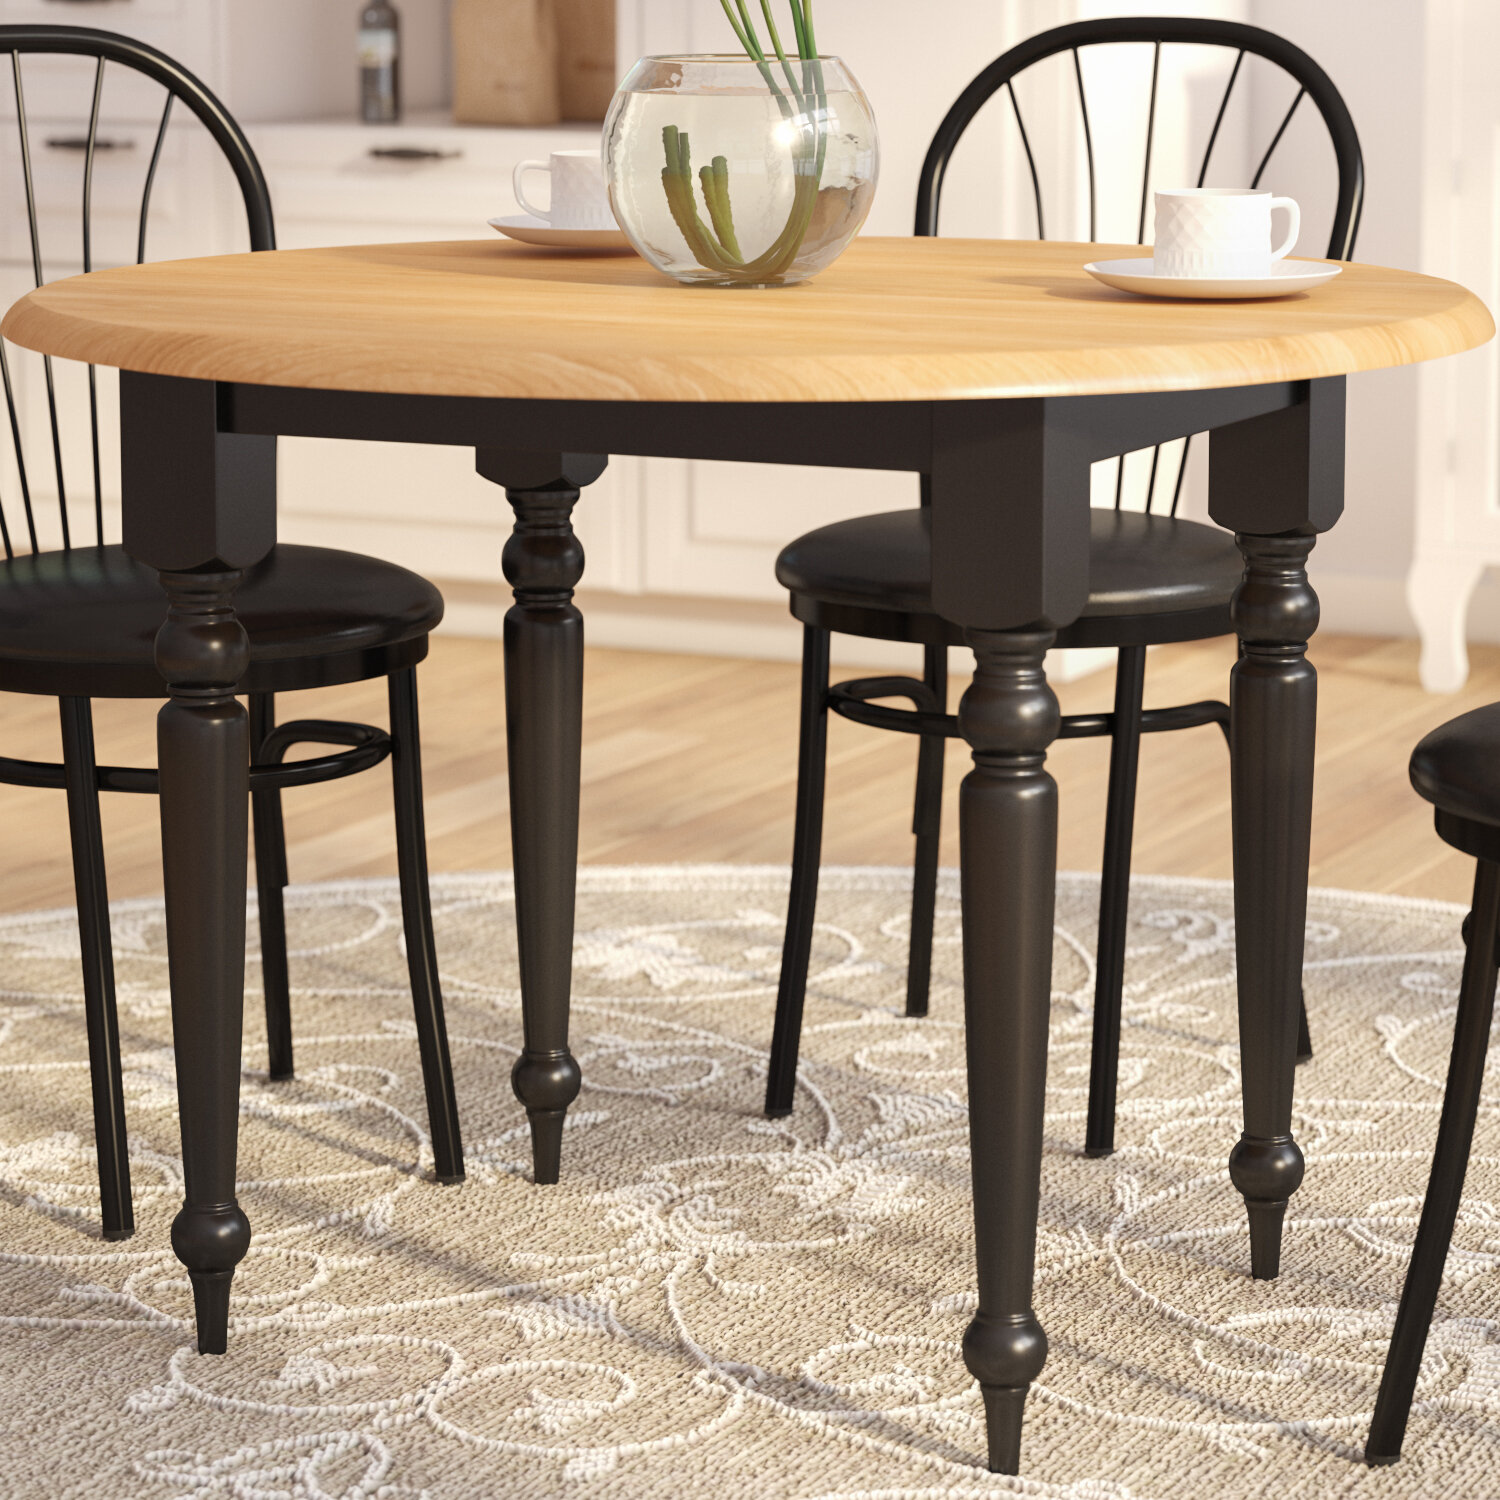 Andover mills belle haven double drop leaf dining table reviews wayfair